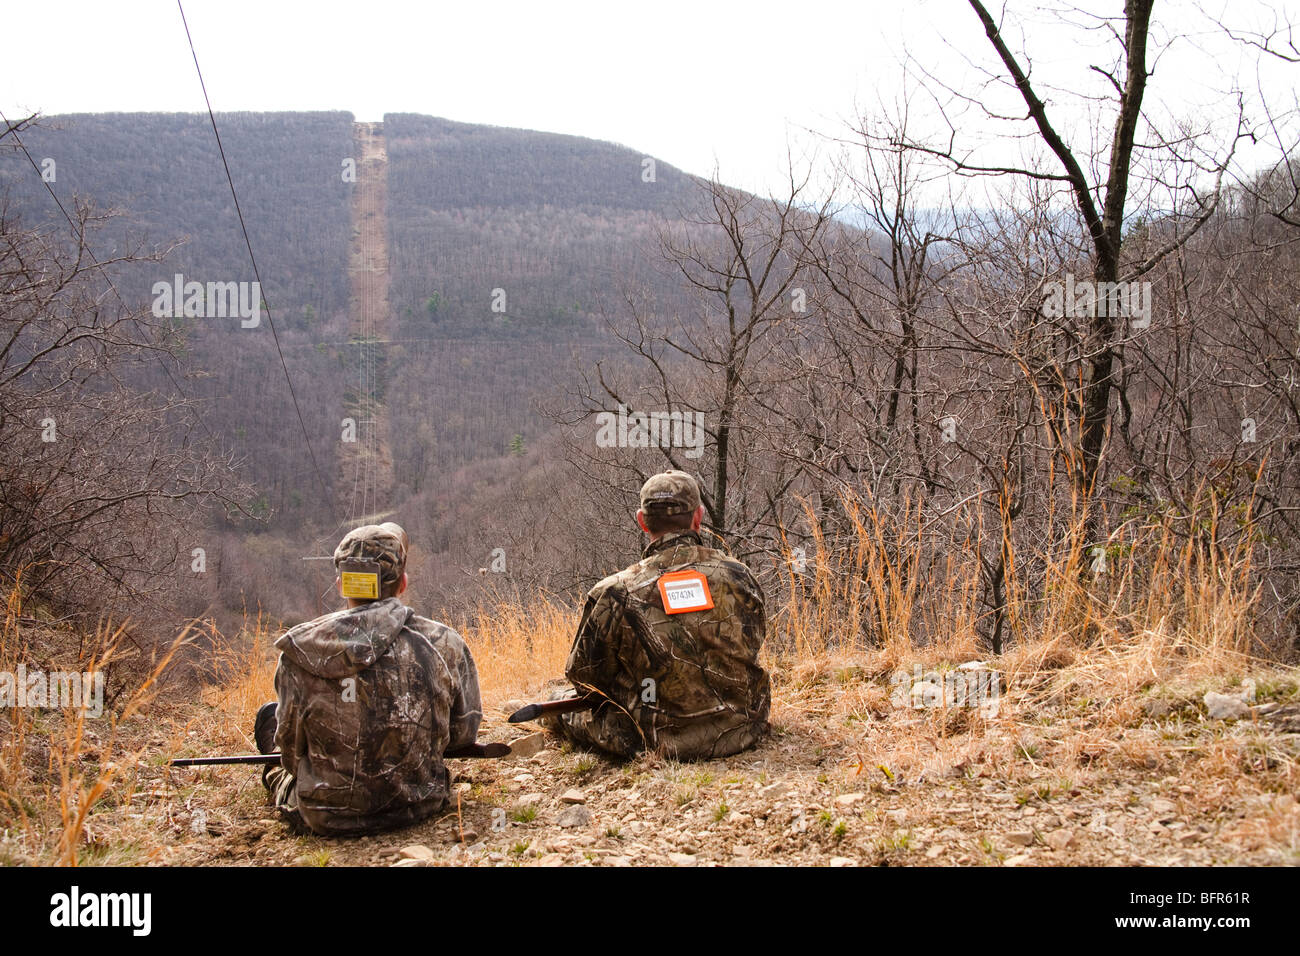 A father and son on a spring turkey hunt - Stock Image